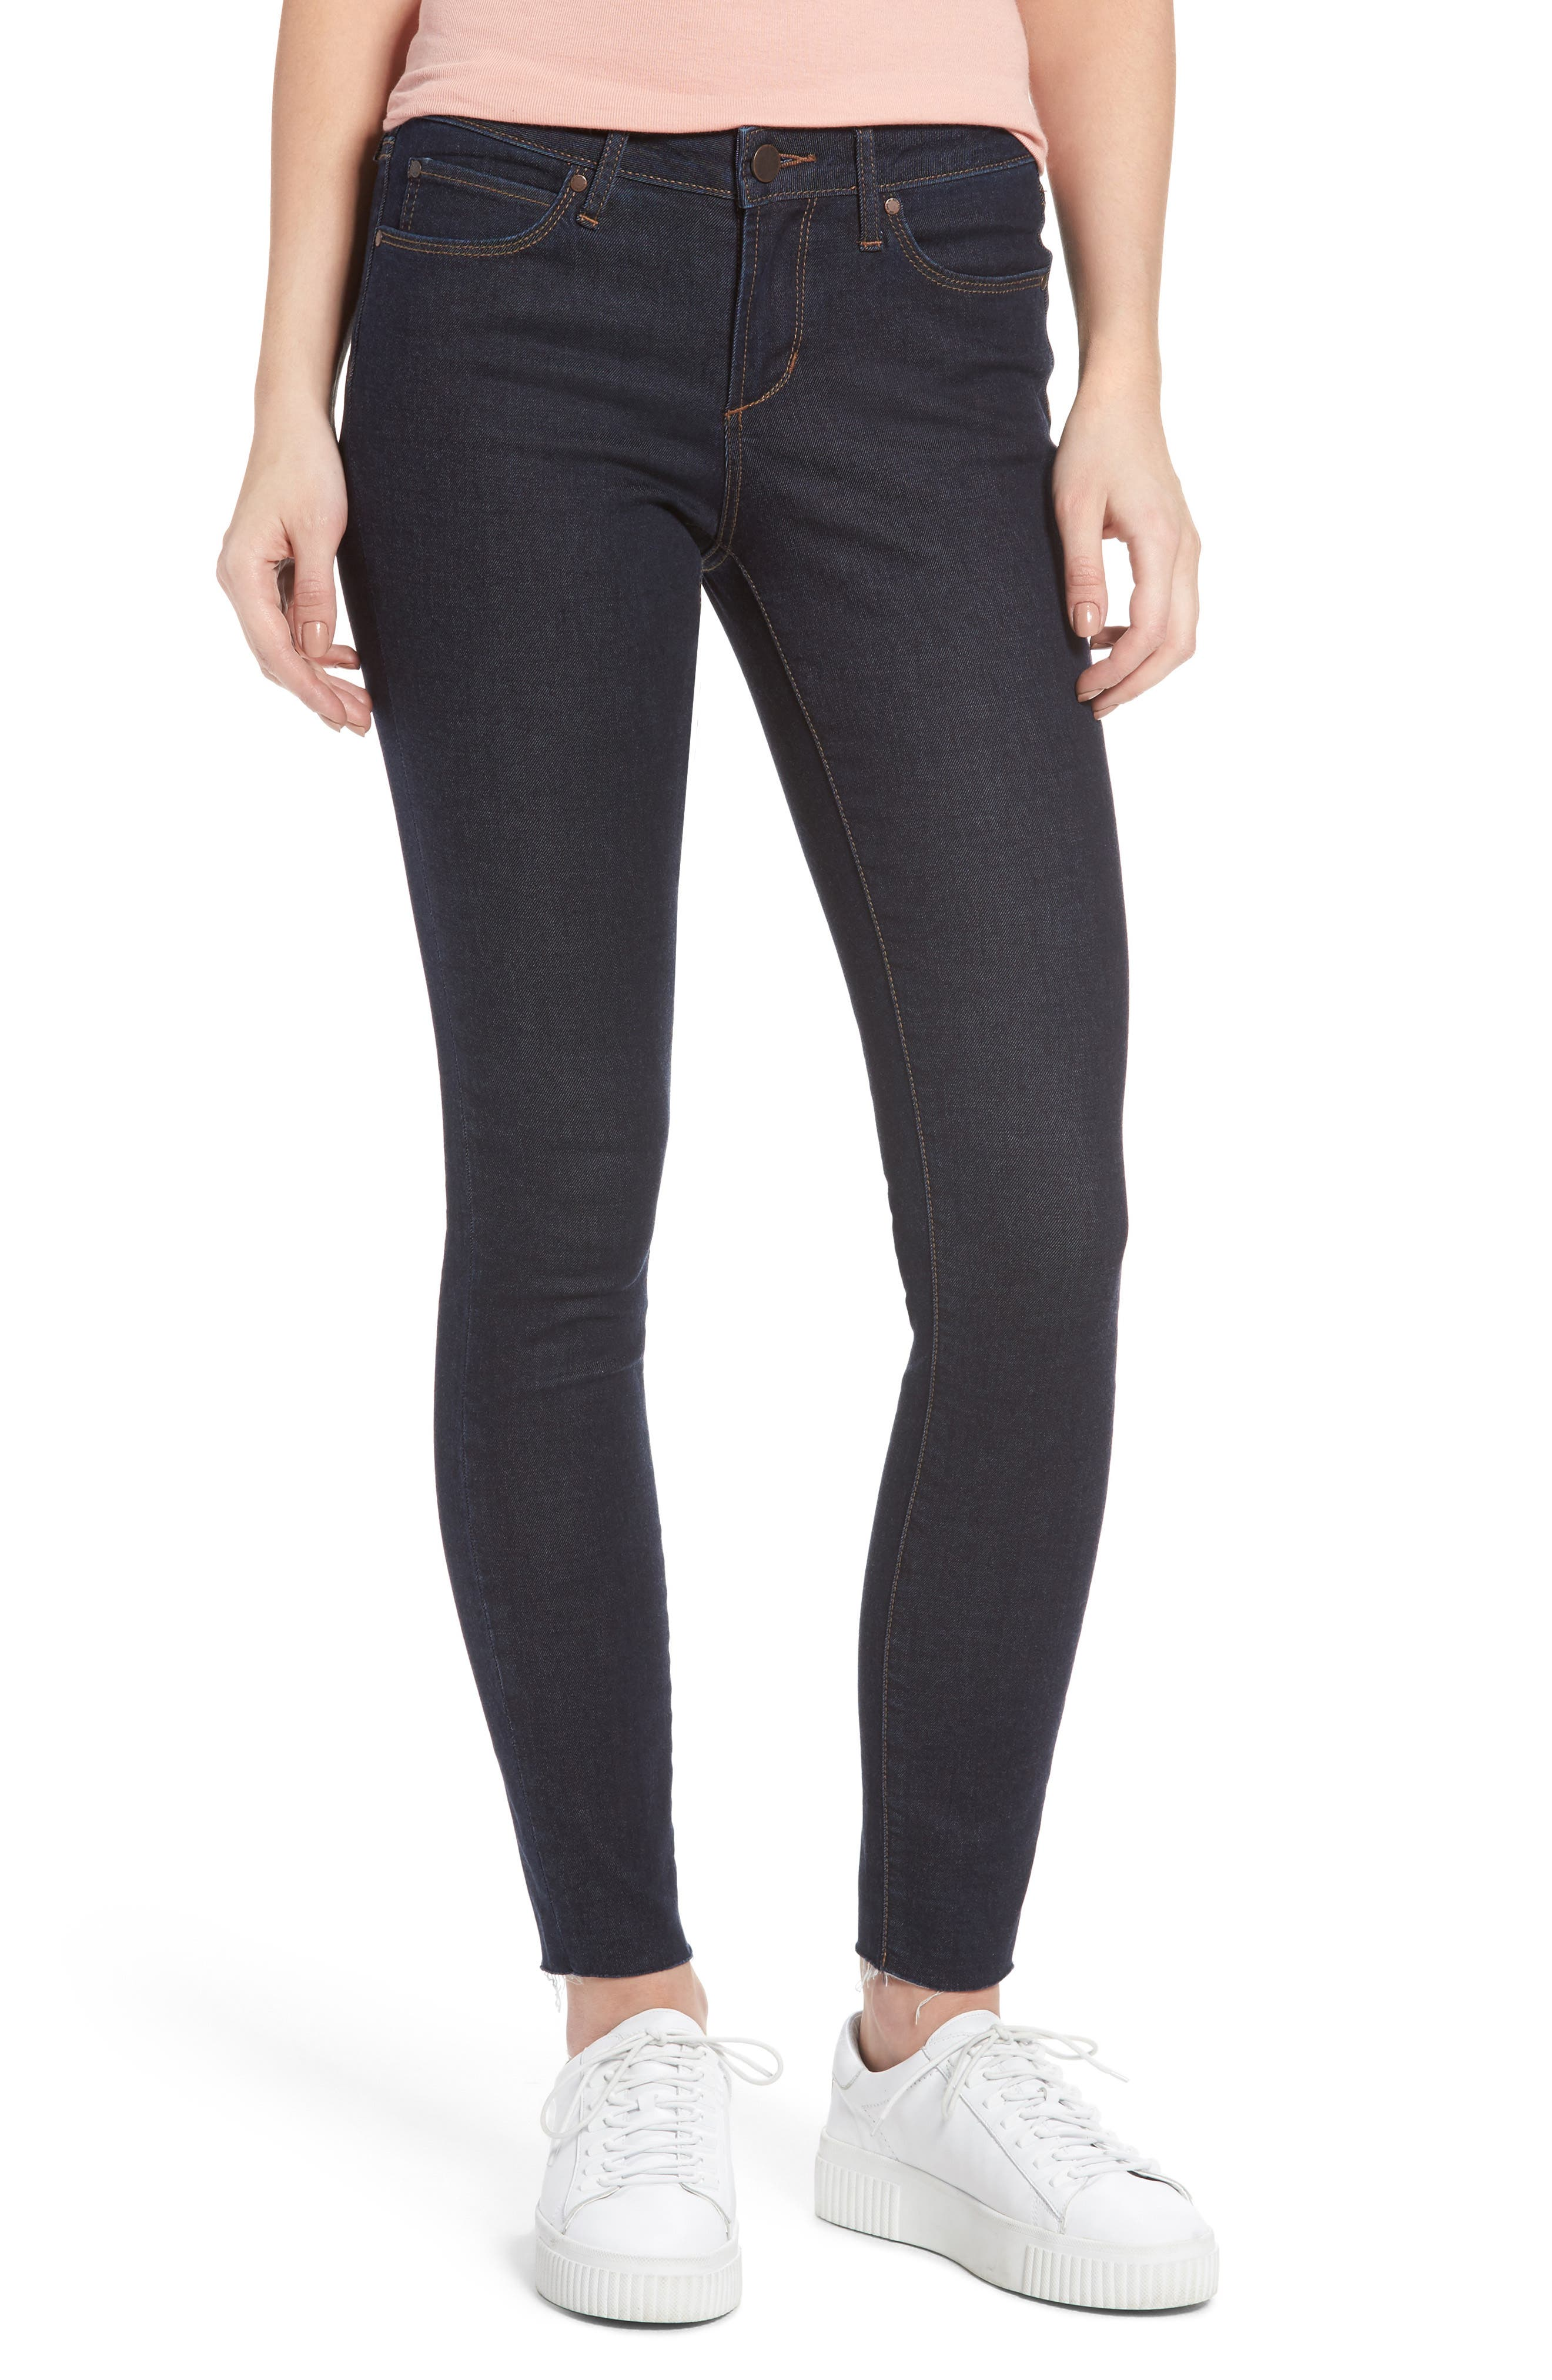 Sarah Ankle Skinny Jeans,                             Main thumbnail 1, color,                             495